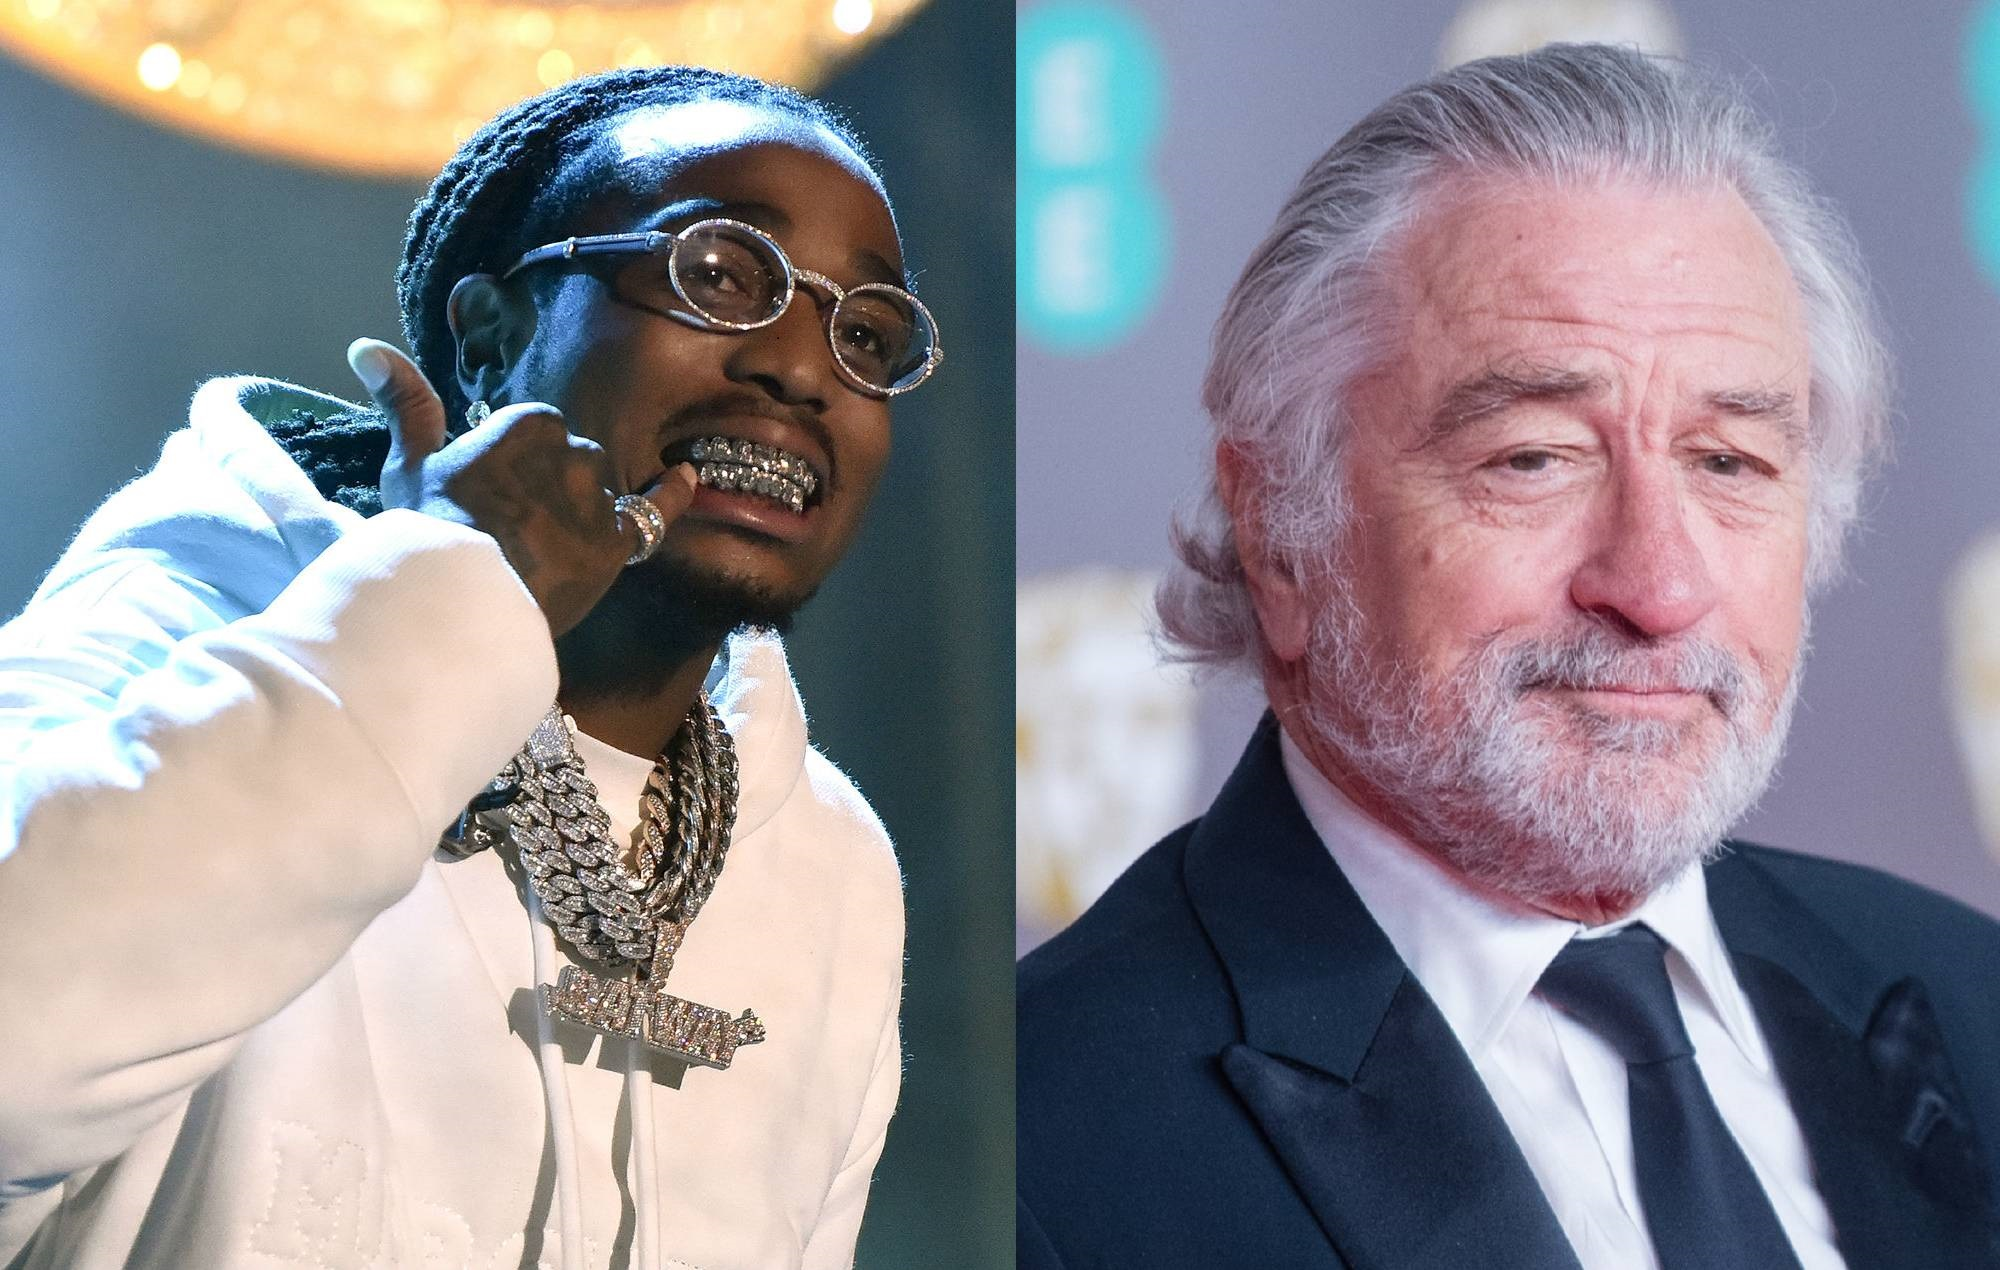 Migos' Quavo is set to make his film debut in new movie with Robert De Niro